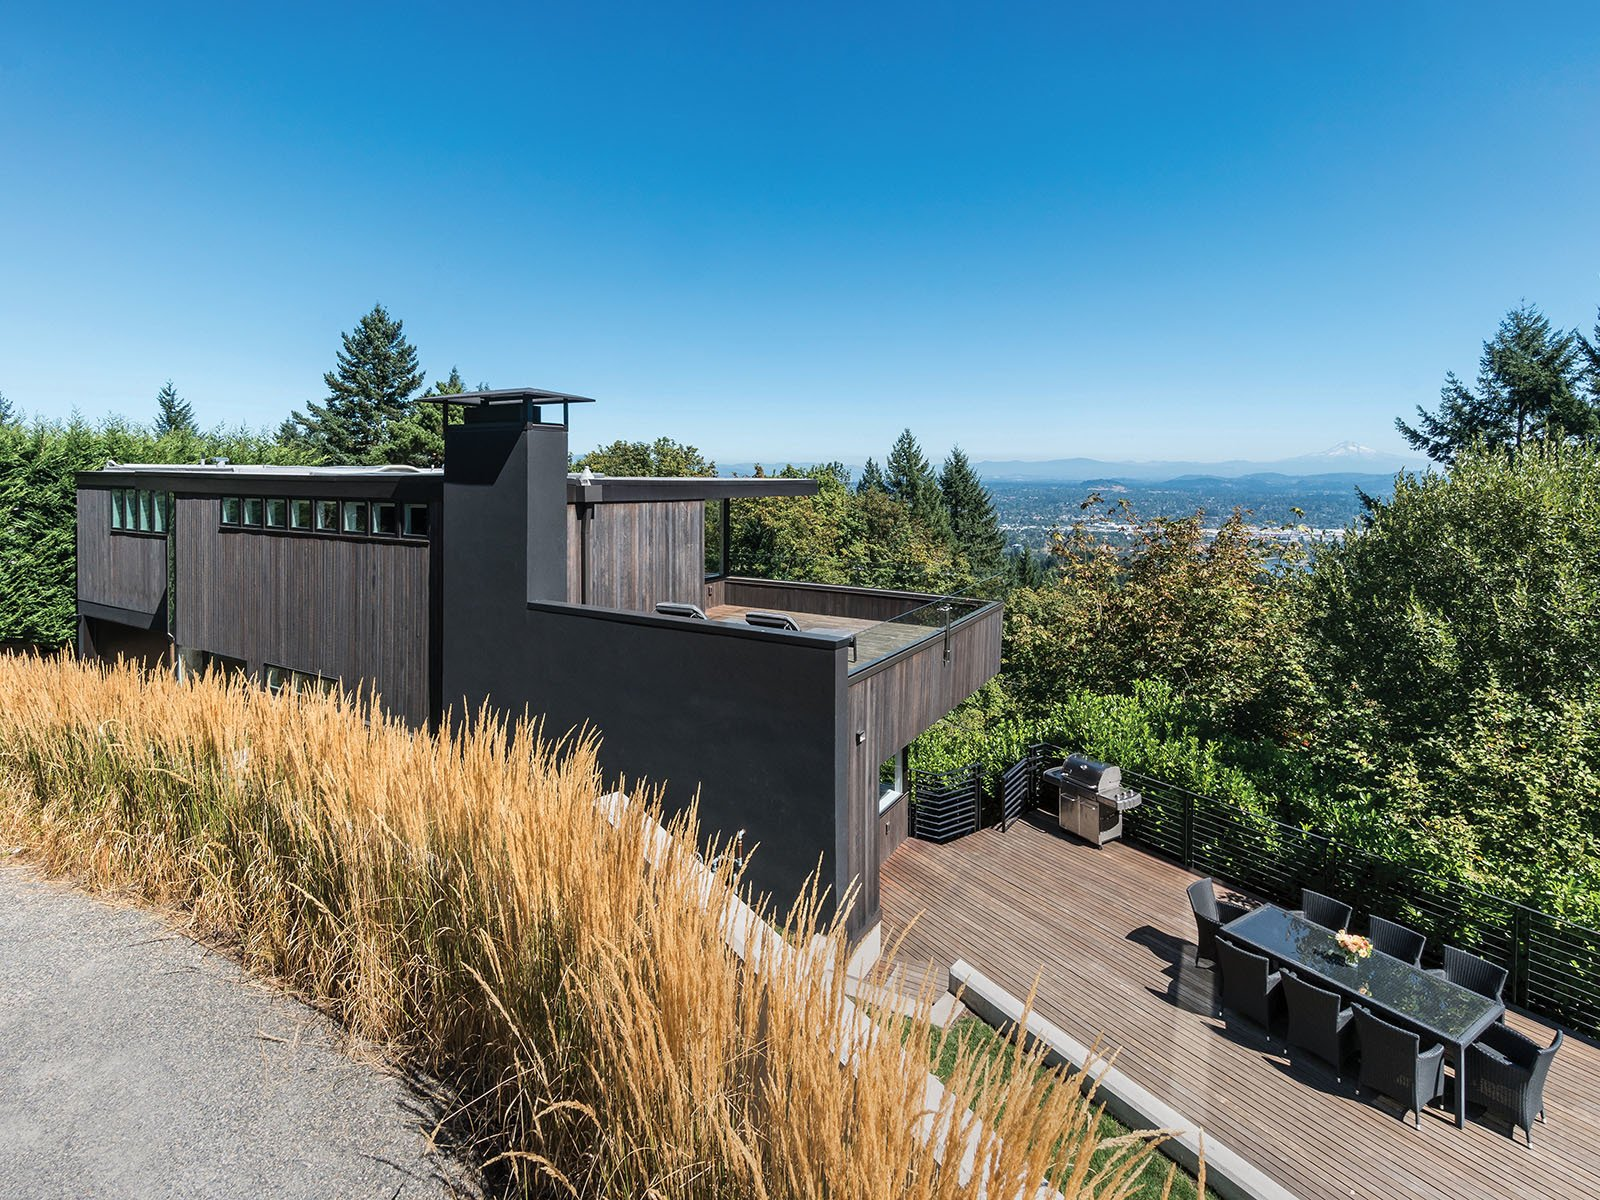 An Iconic Portland Home With Sweeping Mountain Views Asks $1.75M